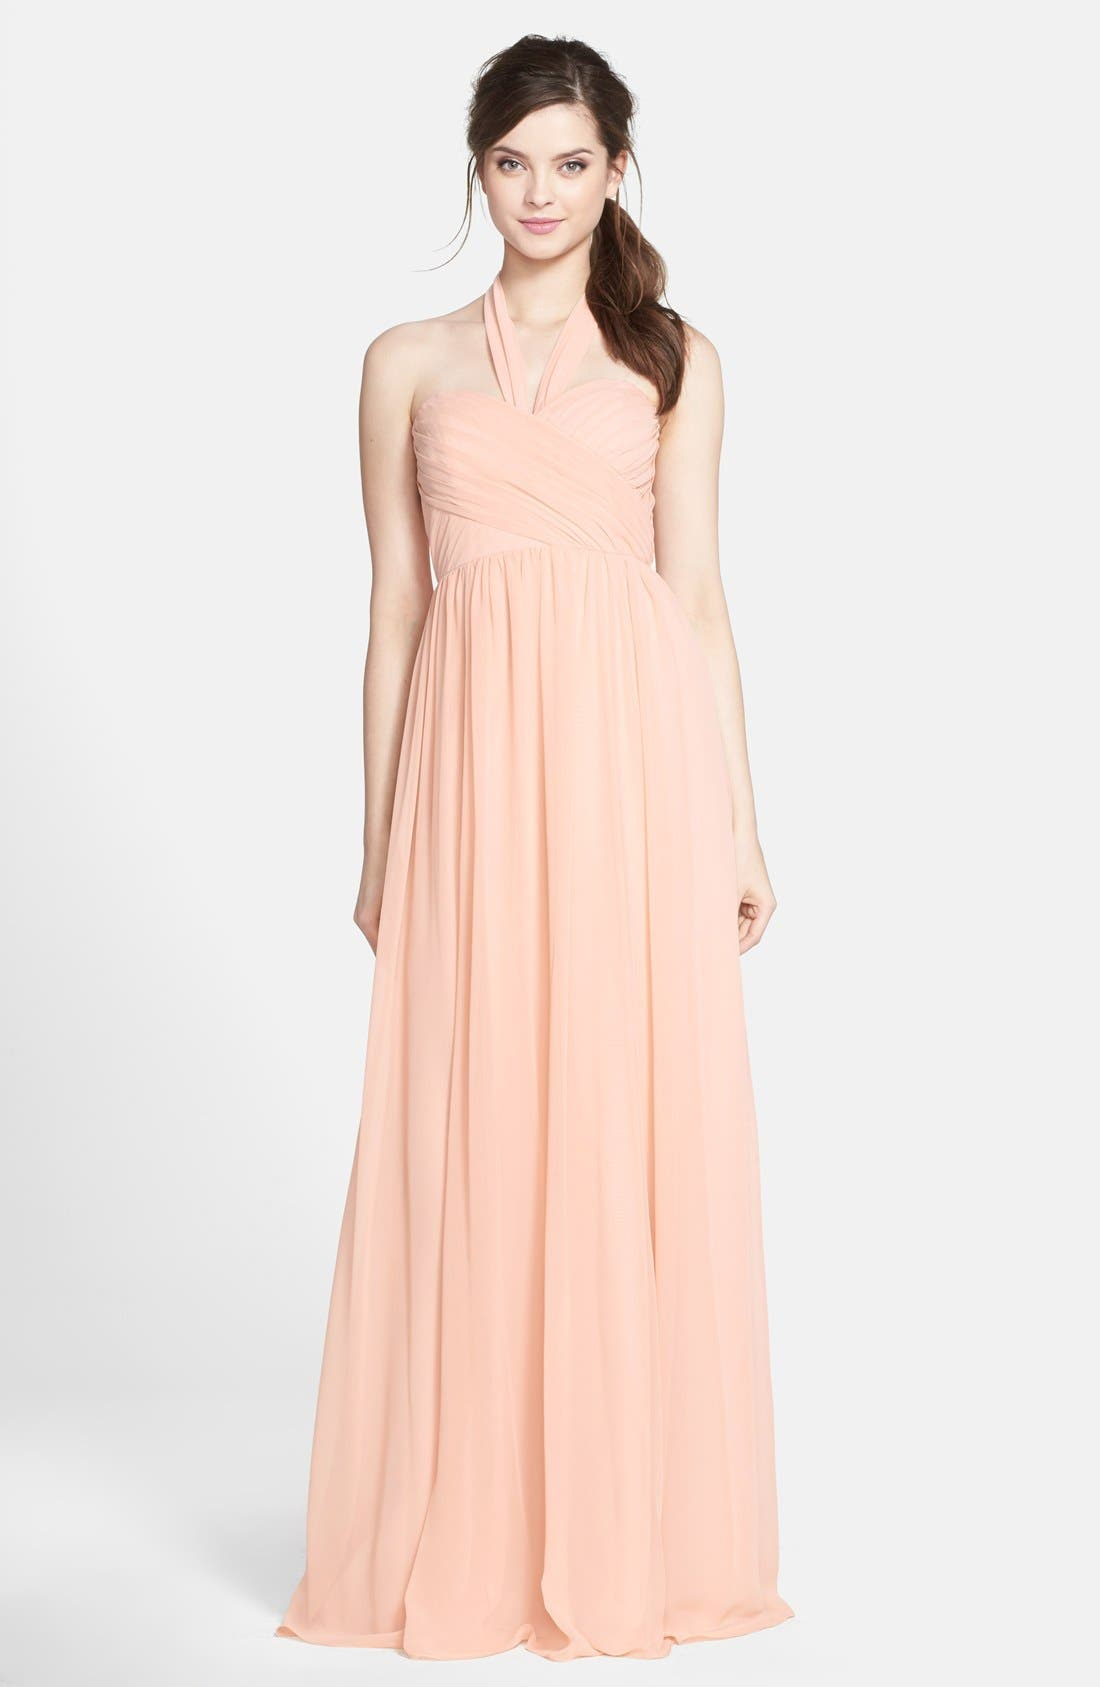 Alternate Image 1 Selected - Jenny Yoo 'Leah' Convertible Chiffon Gown